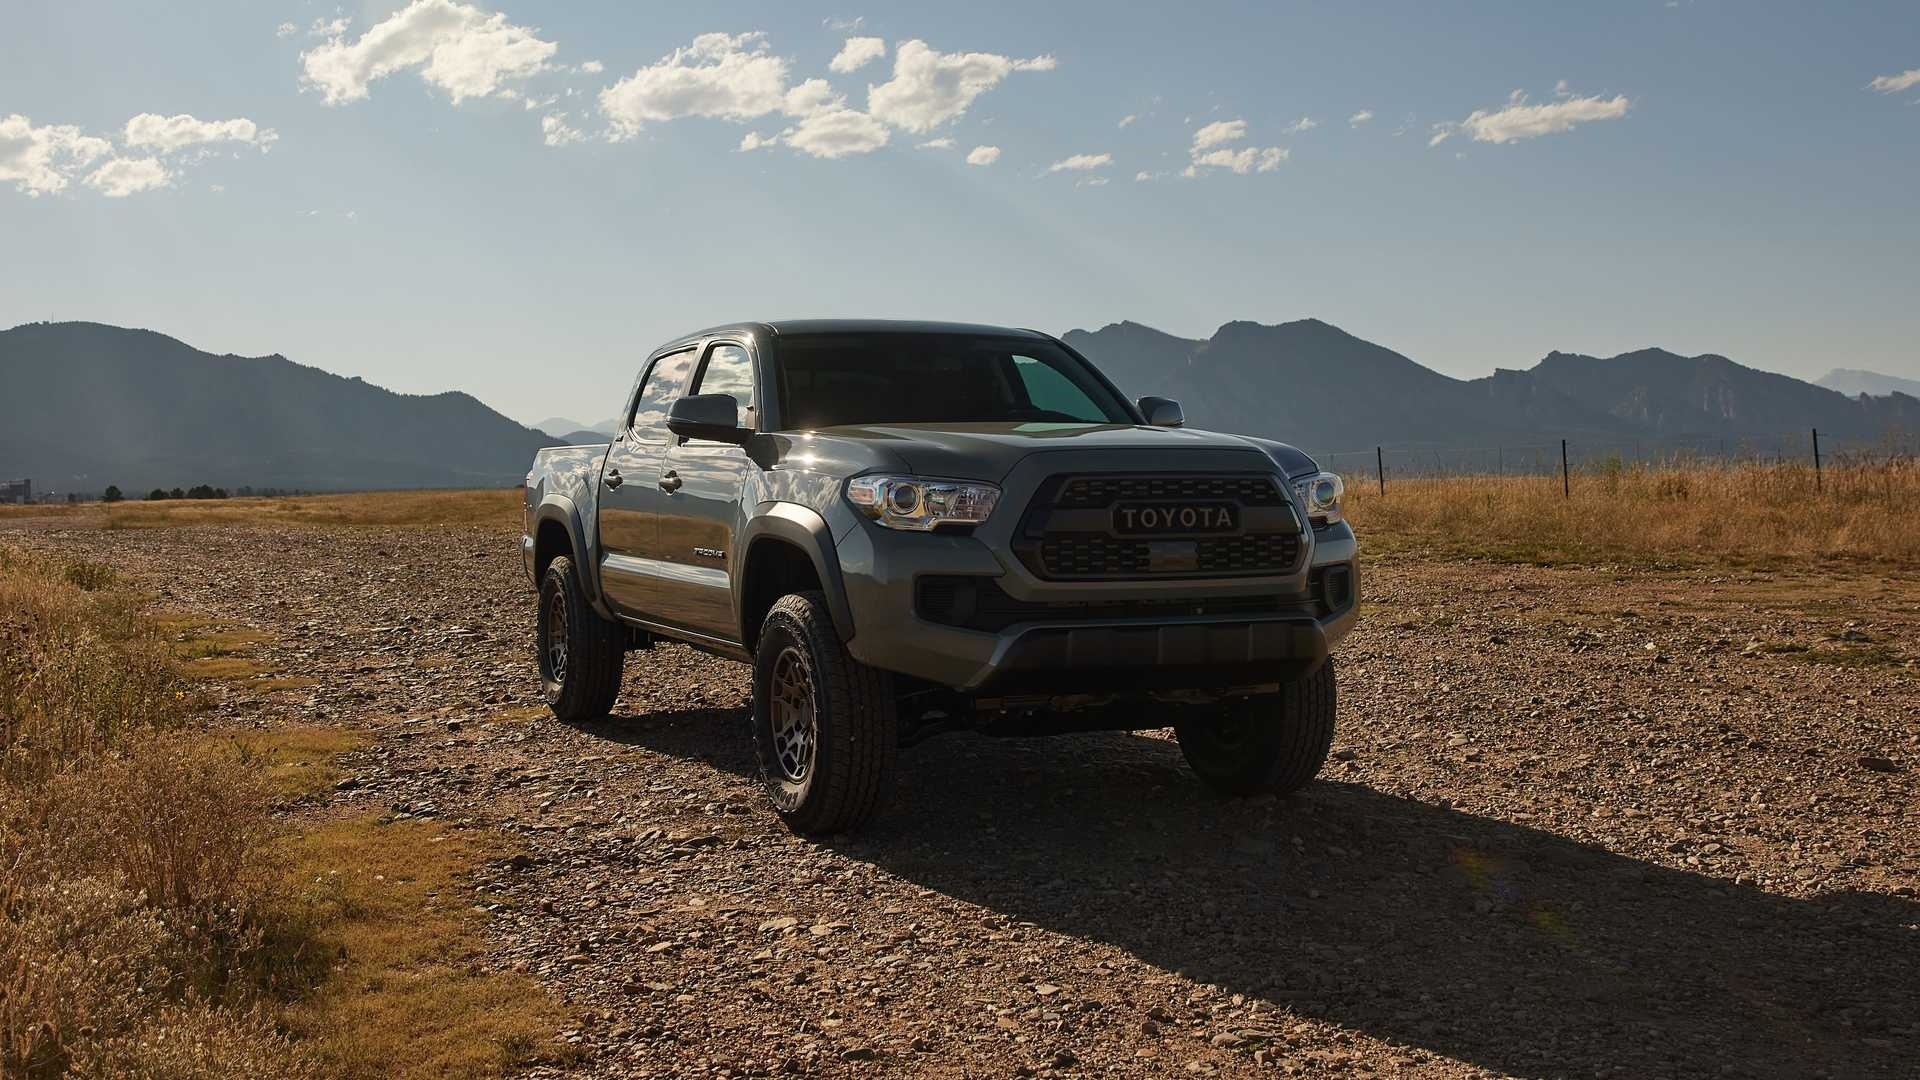 The he moi cua Toyota Tacoma se khong dung chung khung gam voi Hilux anh 1